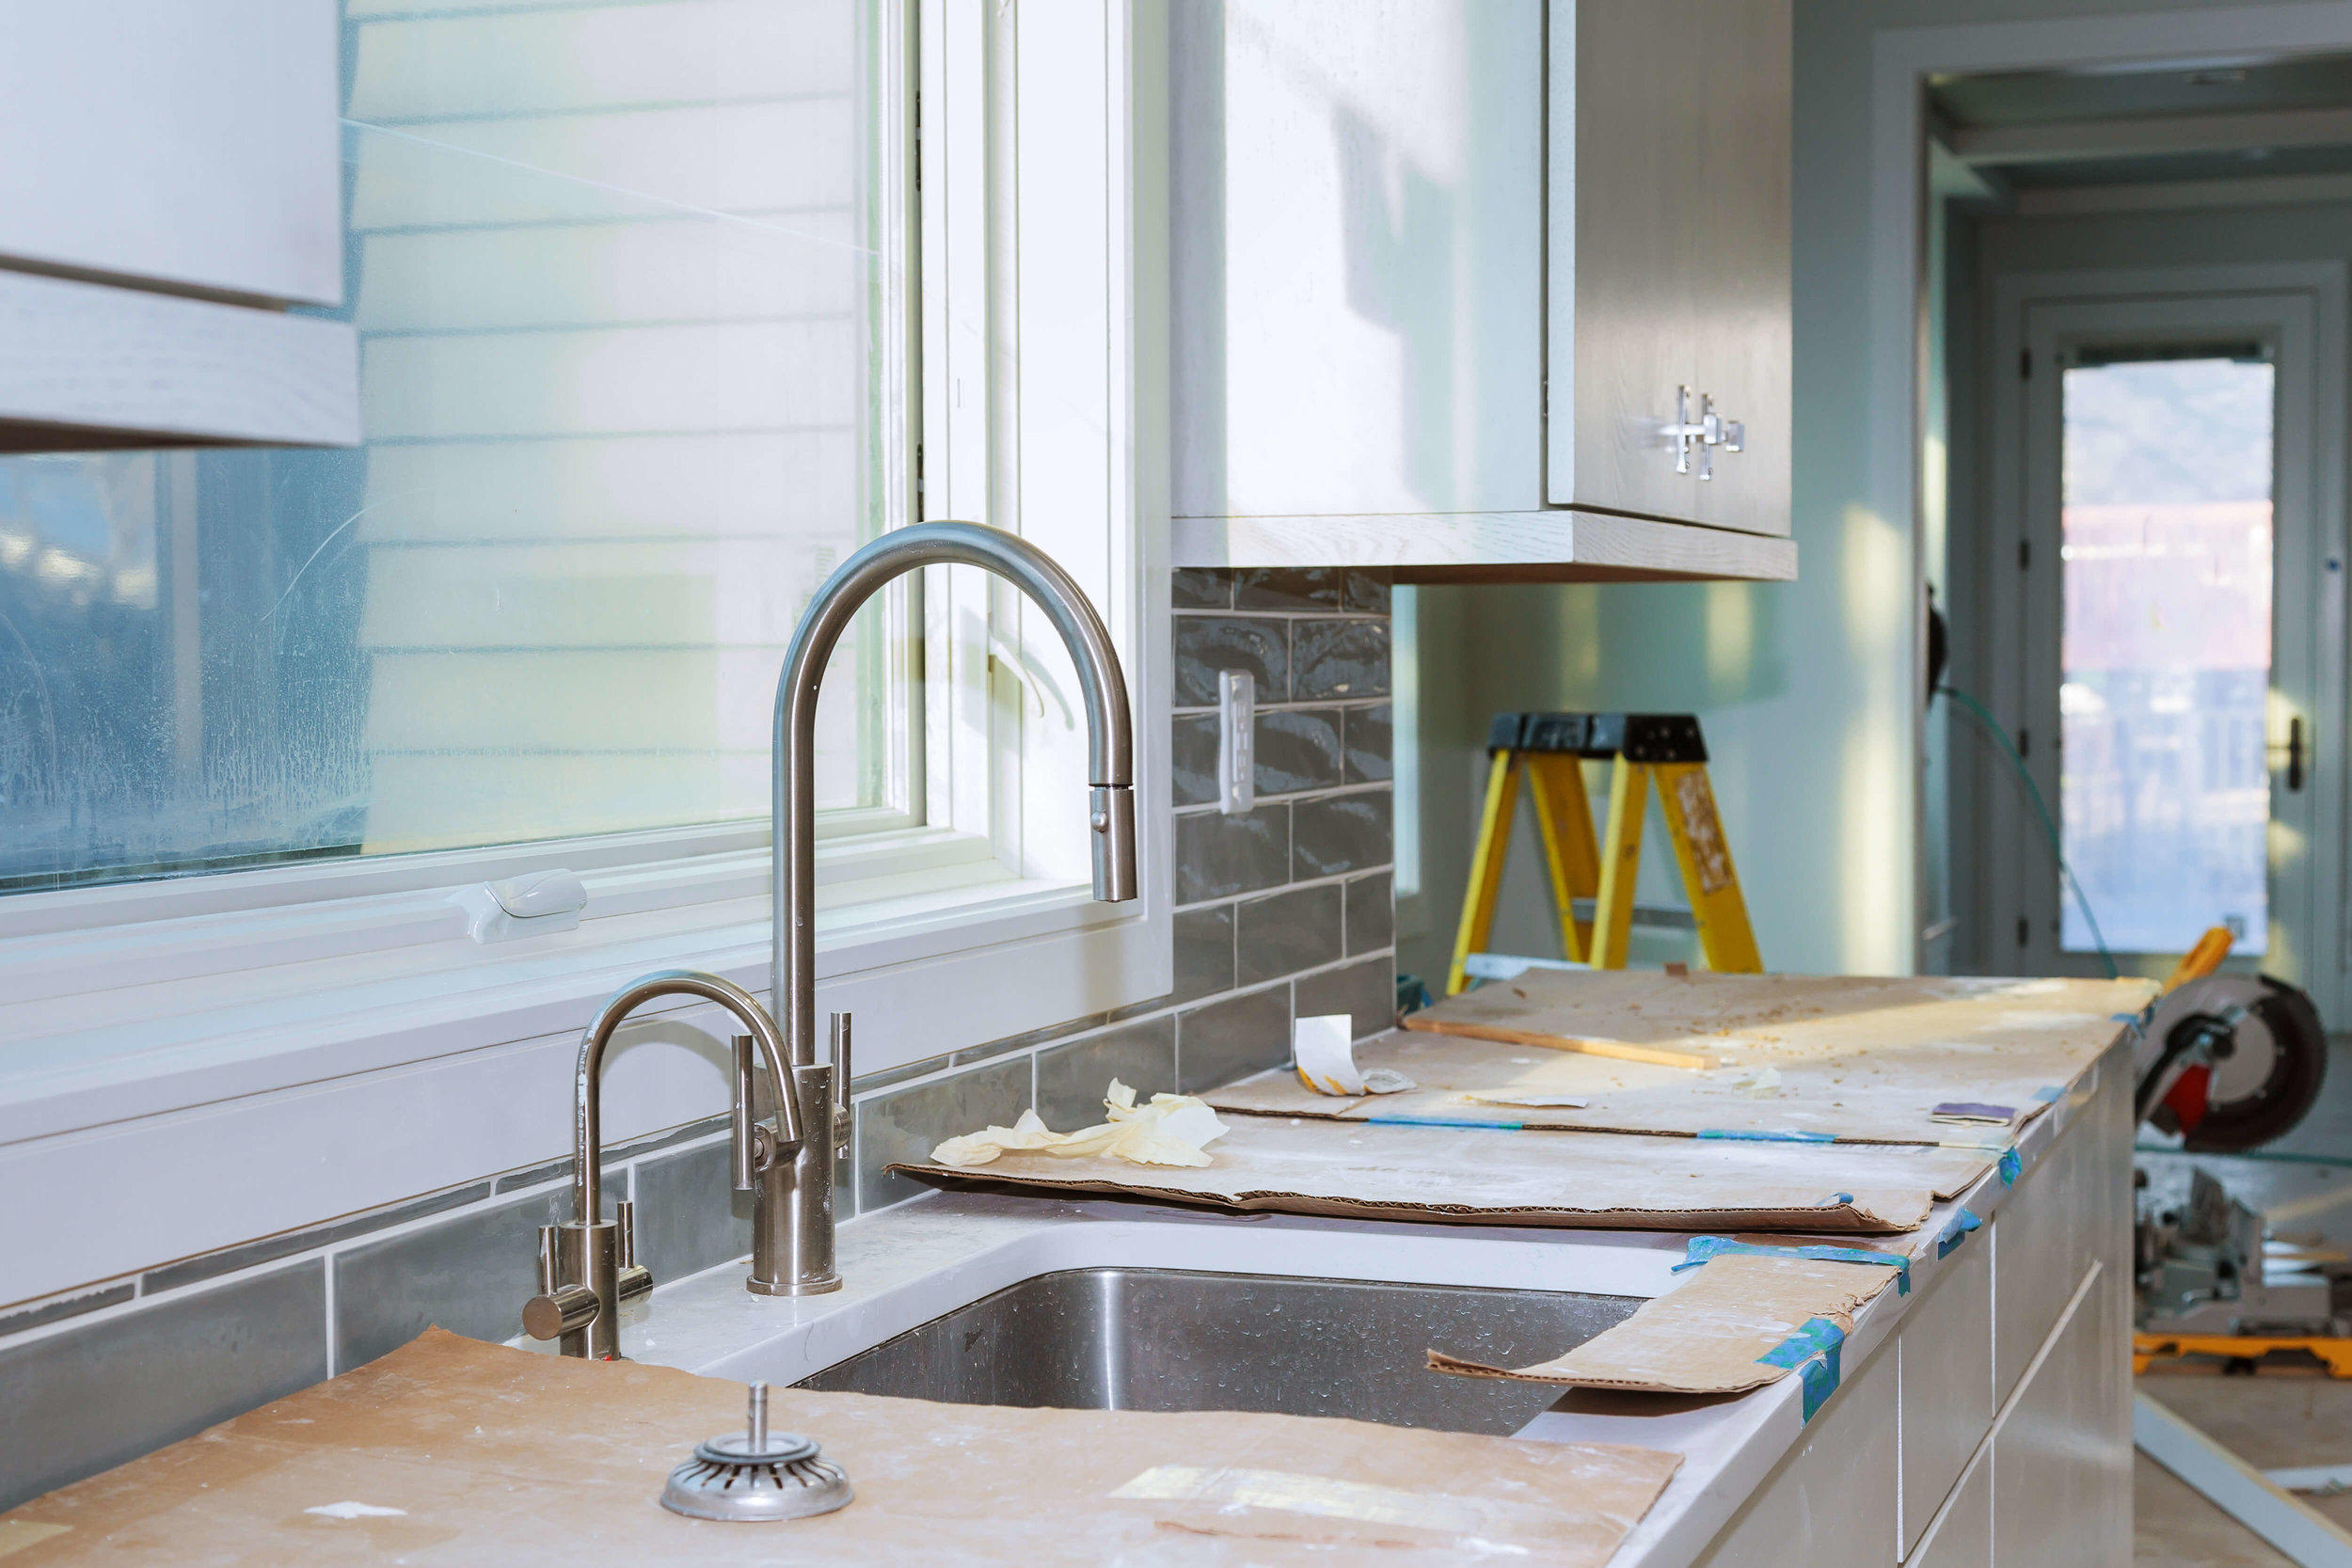 An updated kitchen is a typical want for potential buyers.